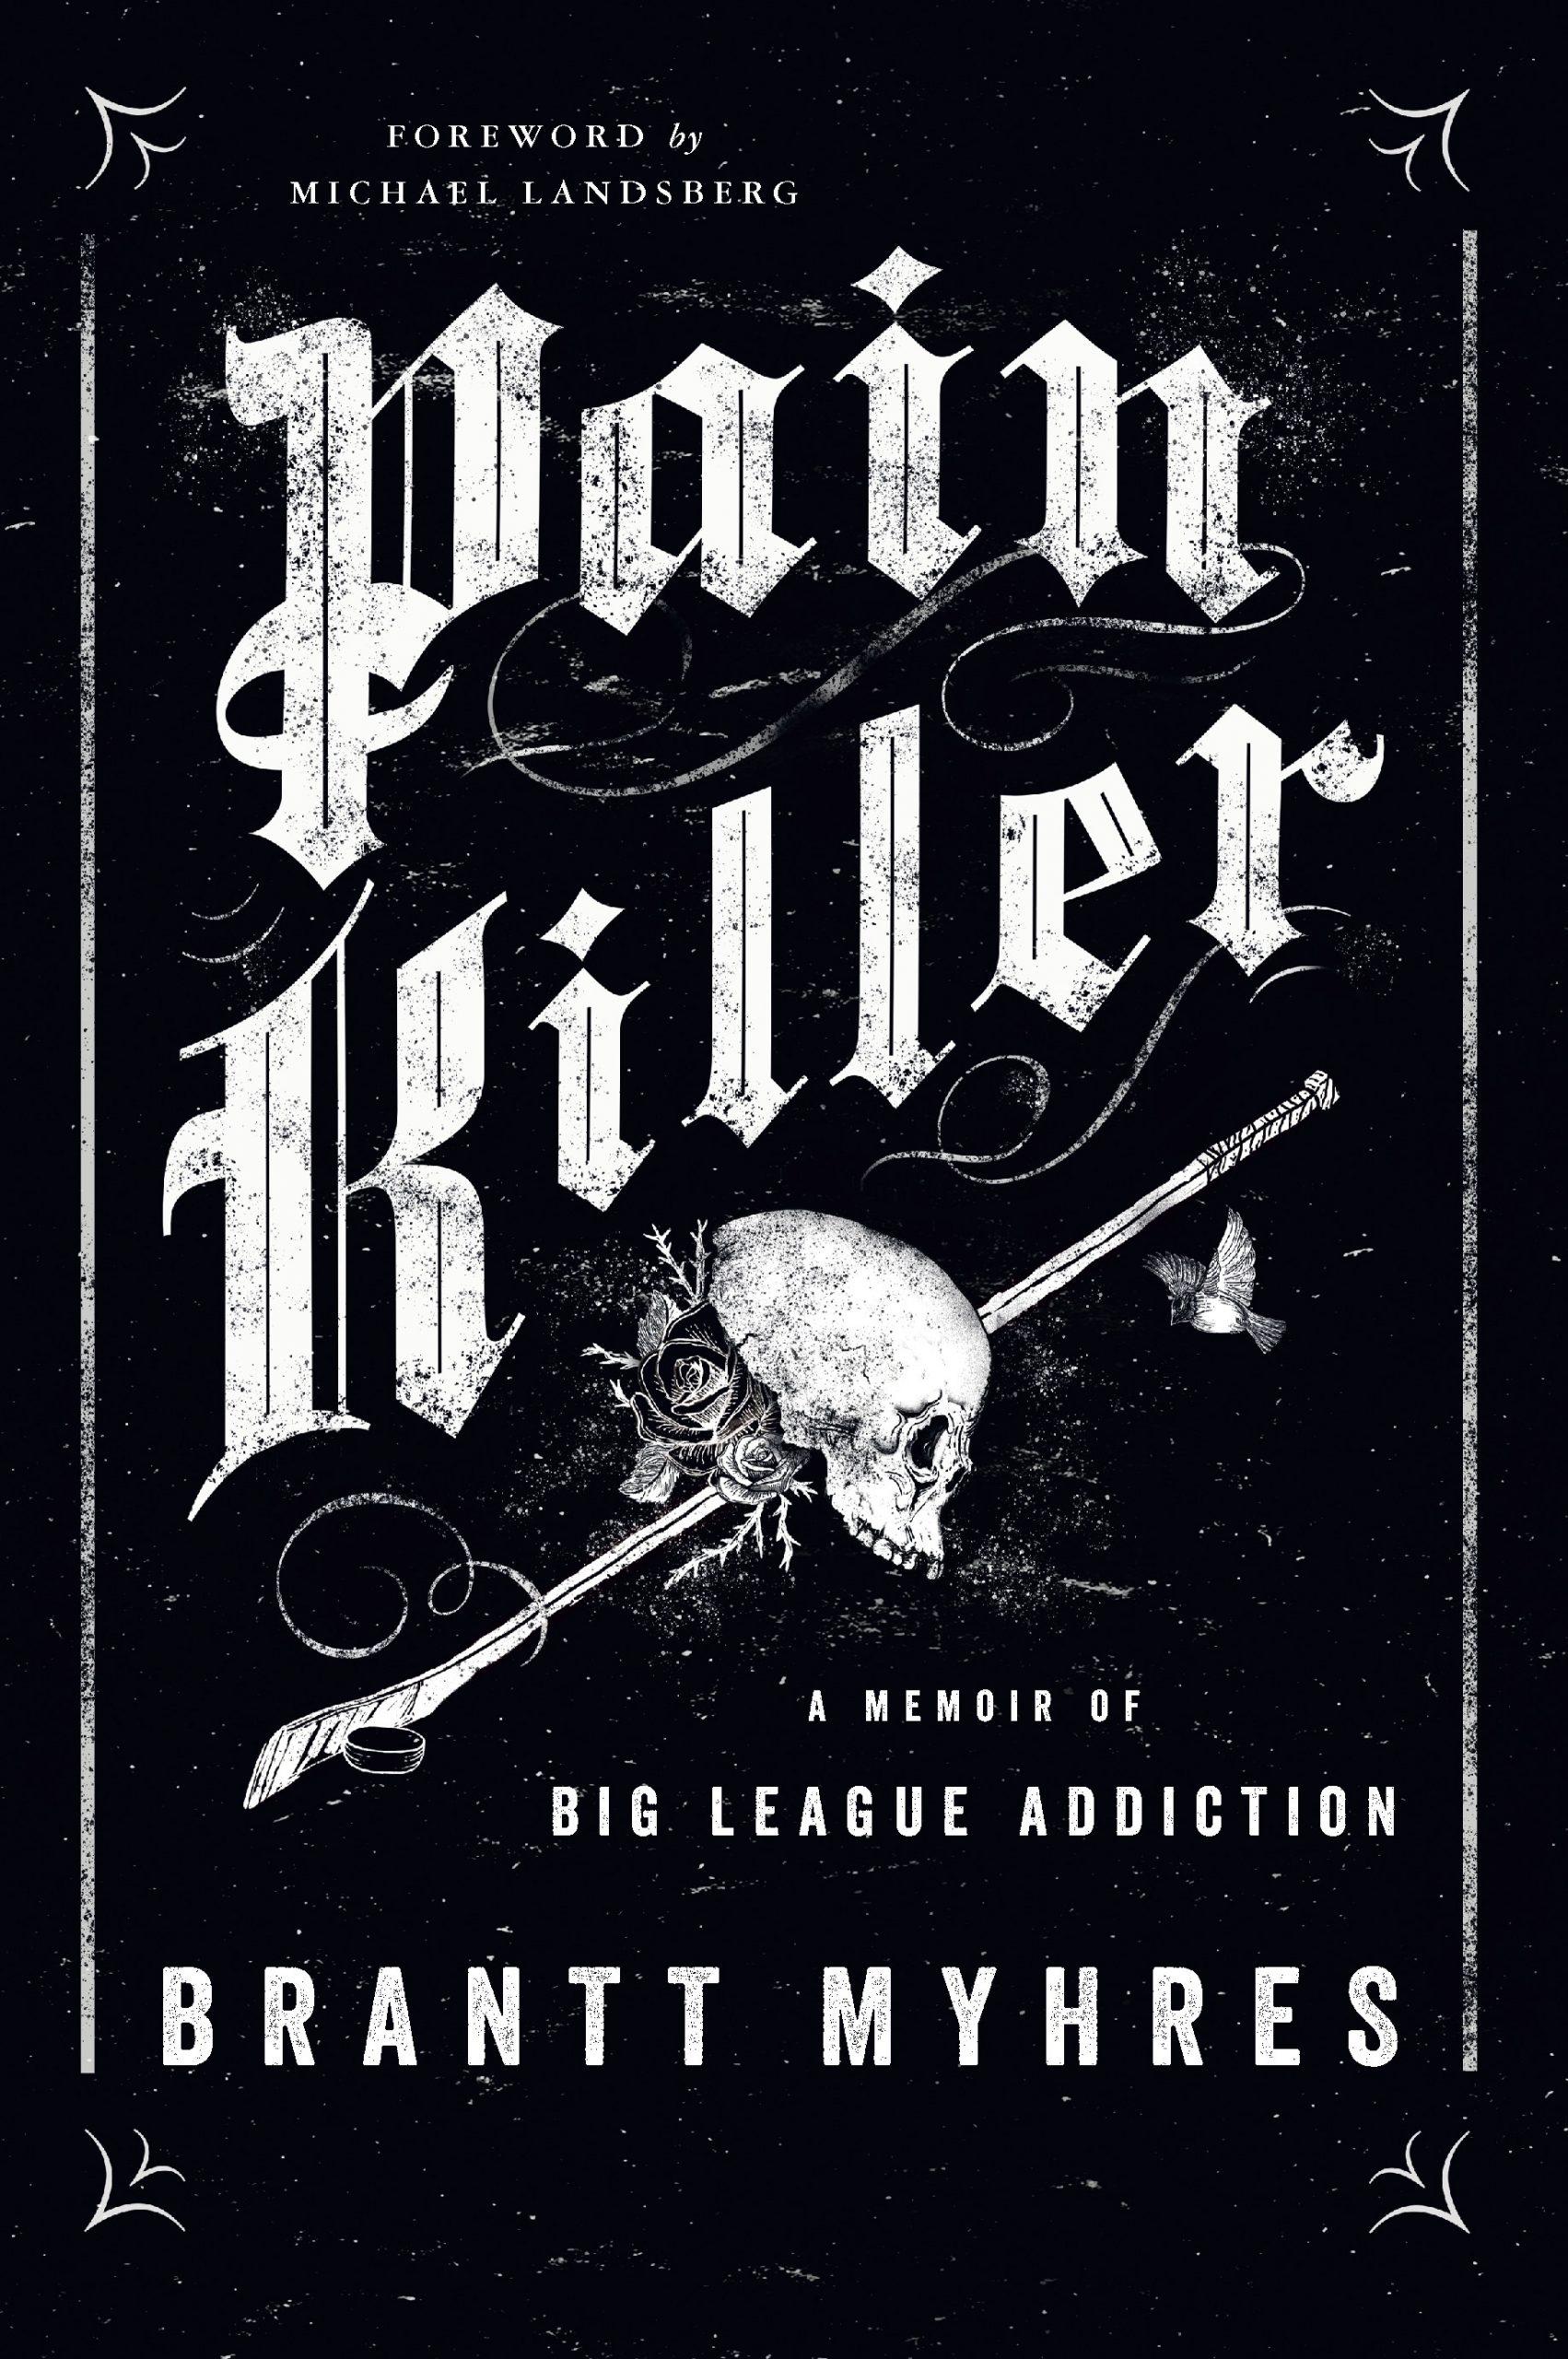 Cover of Pain Killer: A Memoir of Big League Addiction